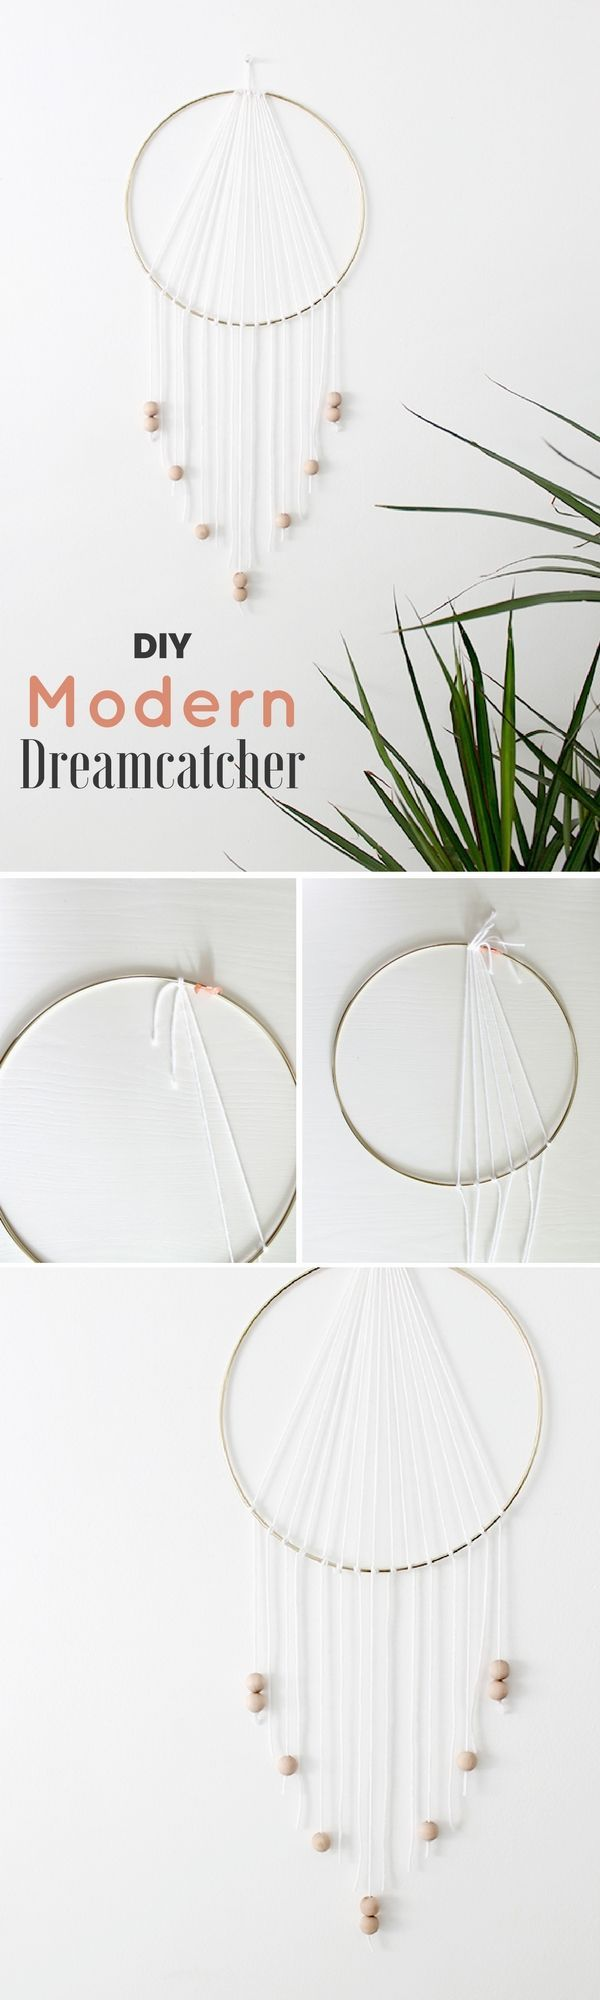 Check out how to make a very easy DIY Modern Dreamcatcher for bedroom decor @istandarddesign